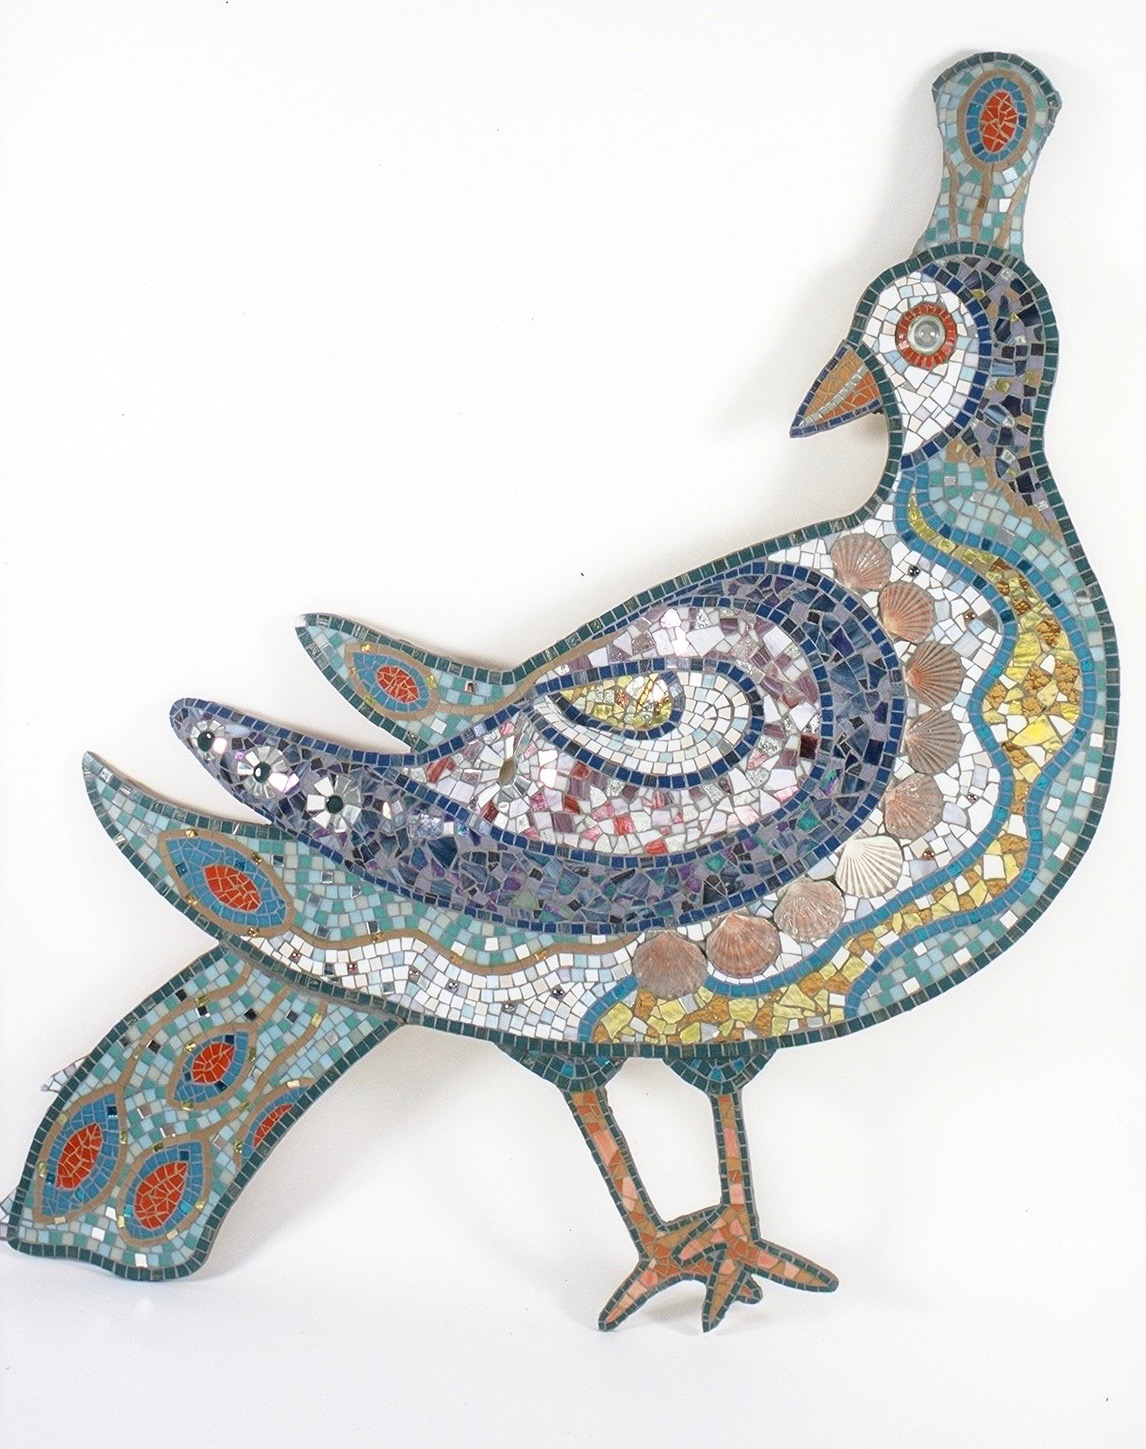 Mosaic Bird feature for walls